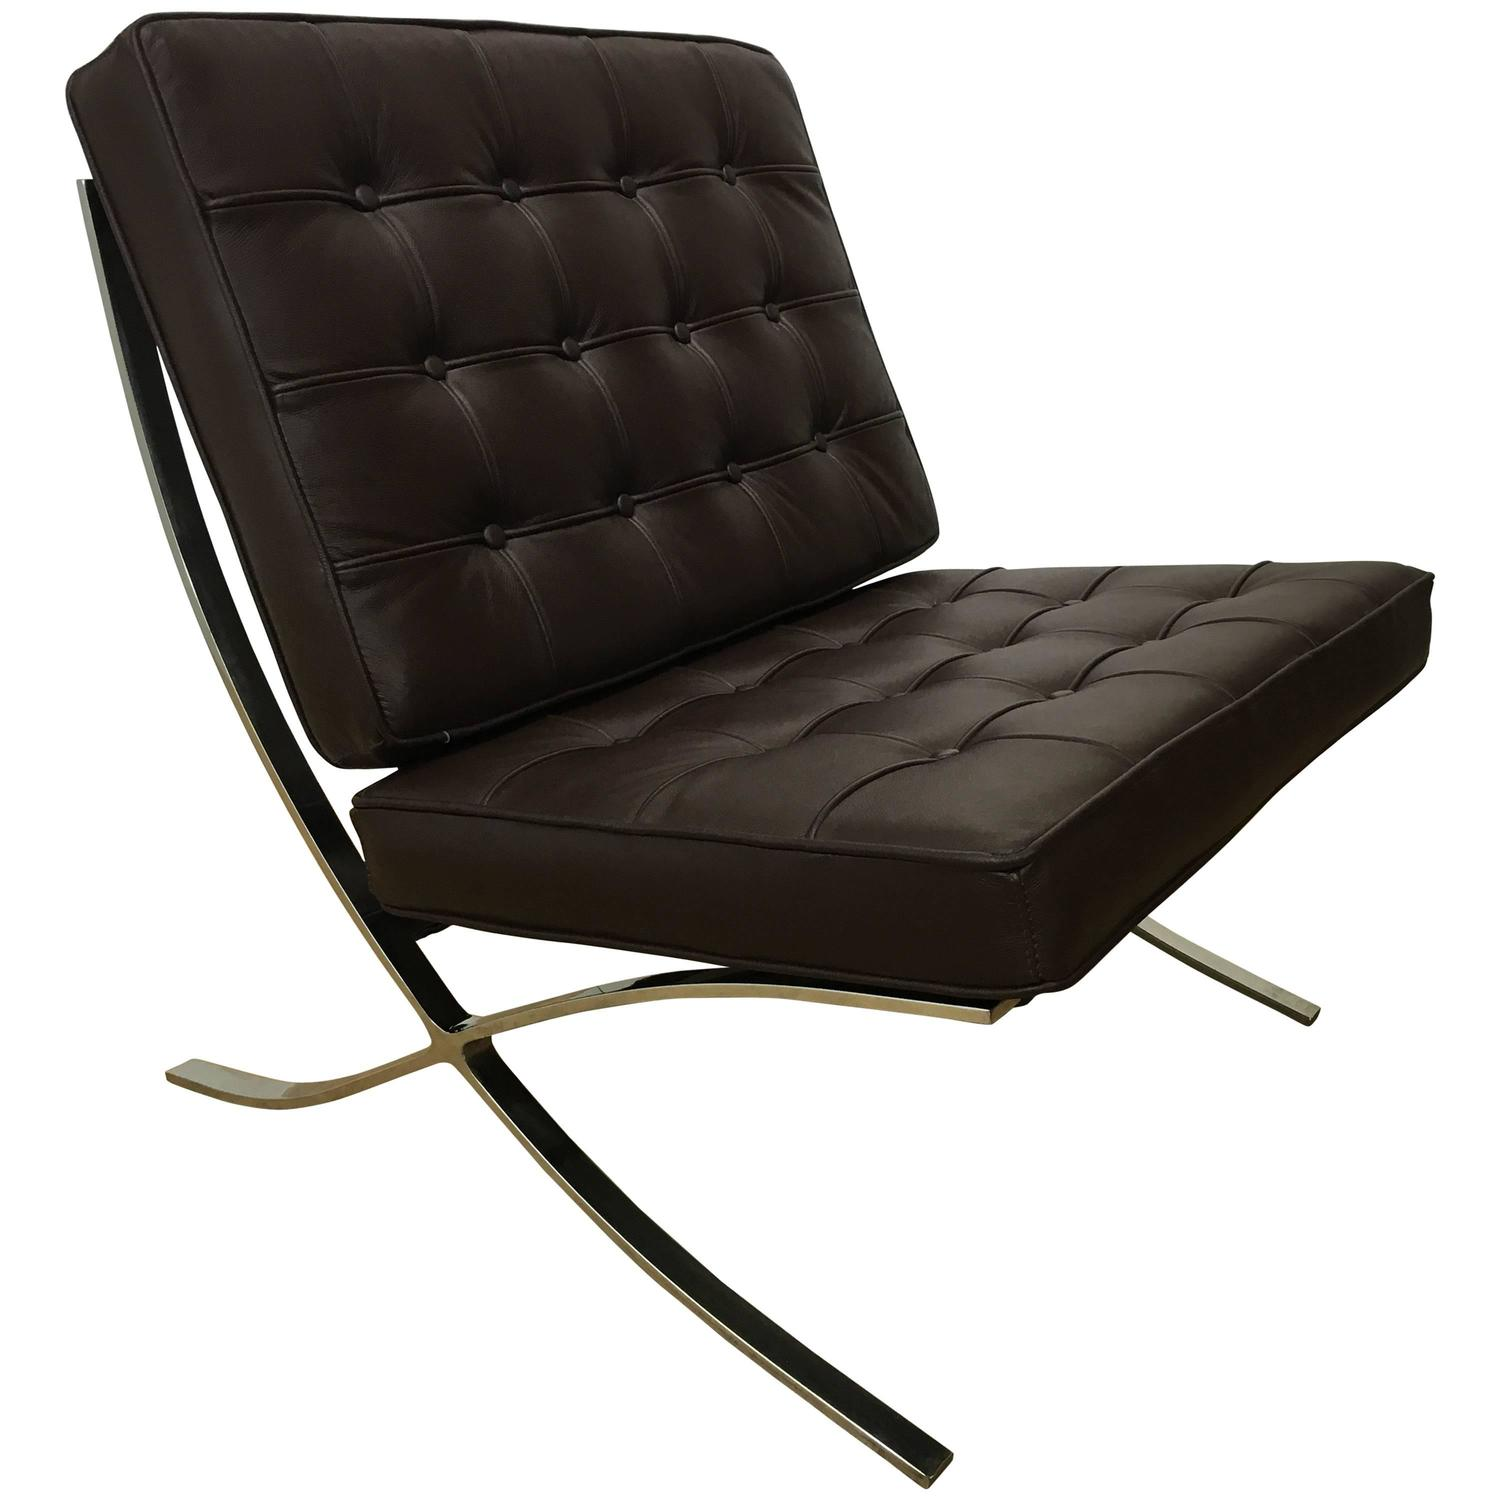 Handsome Brown Leather Barcelona Lounge Chair For Sale at 1stdibs